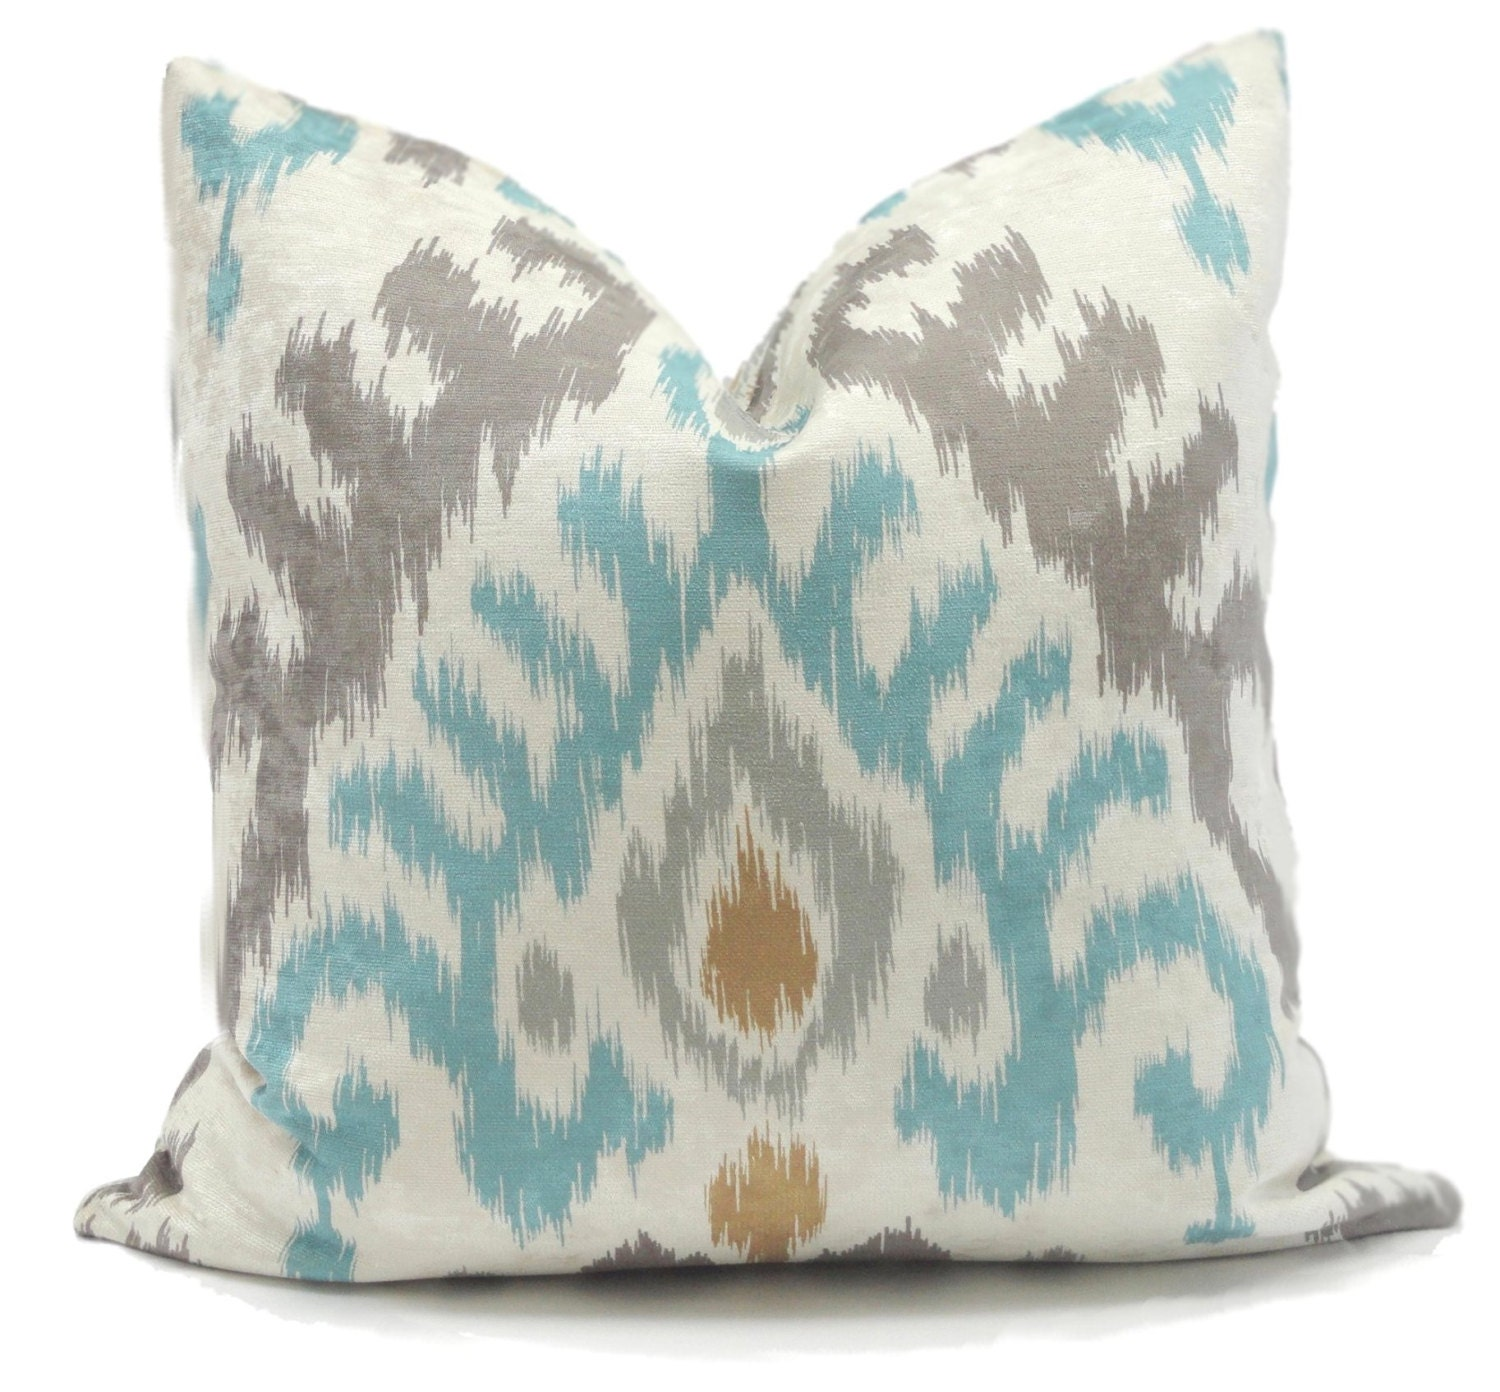 Kravet Aqua Gray Velvet Ikat Decorative Pillow Cover Lumbar